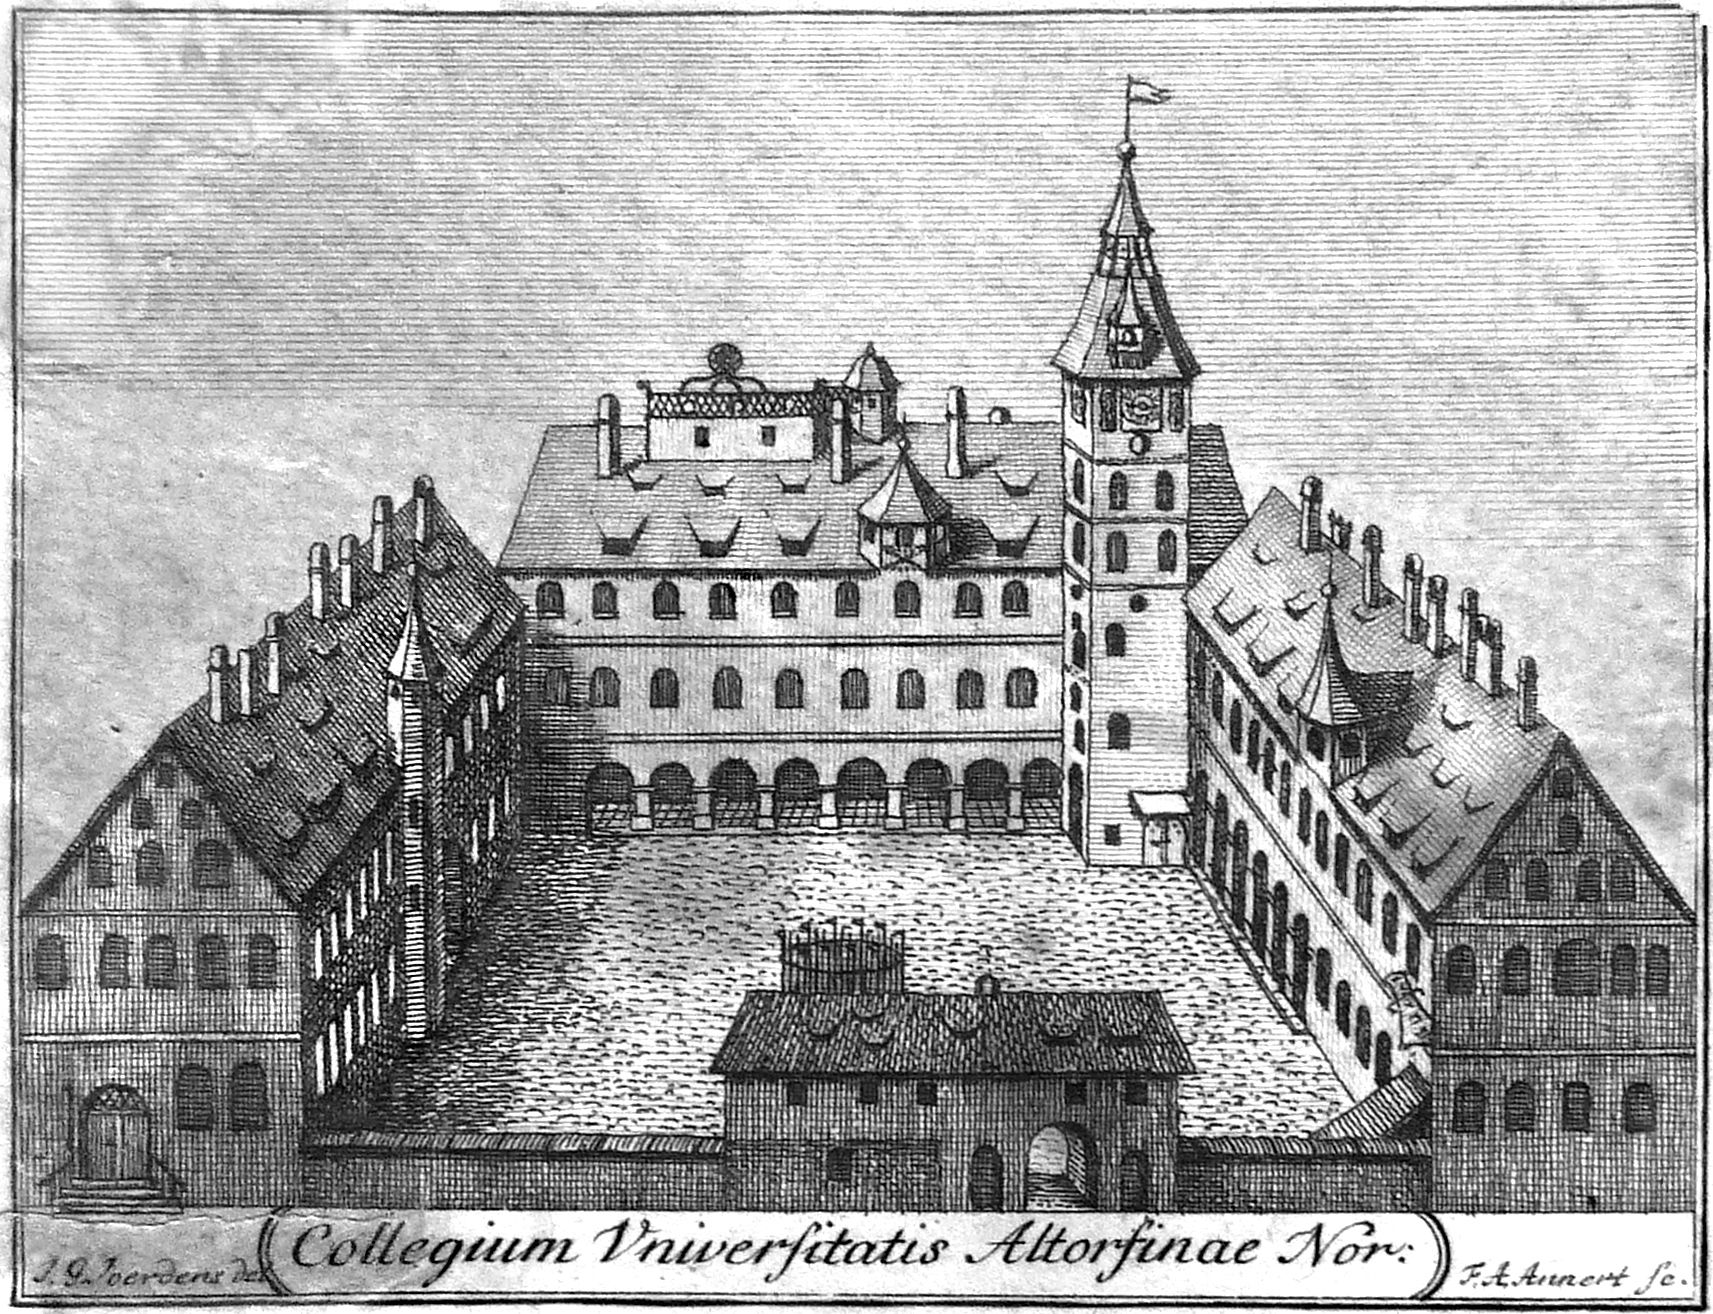 Collegium Universitatis Altorfinae Nor. Gesamtansicht